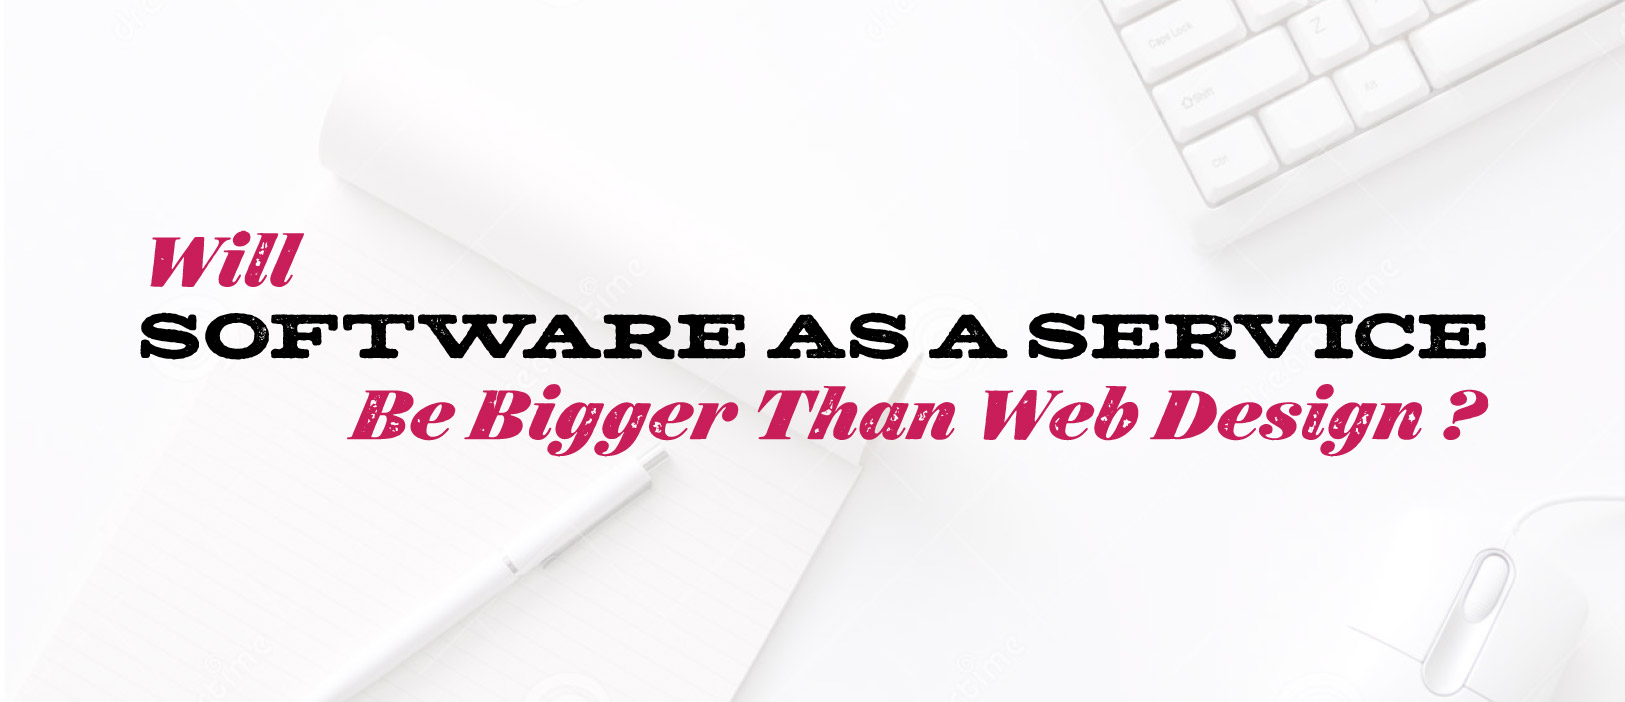 Will Software as a Service Be Bigger than web design?